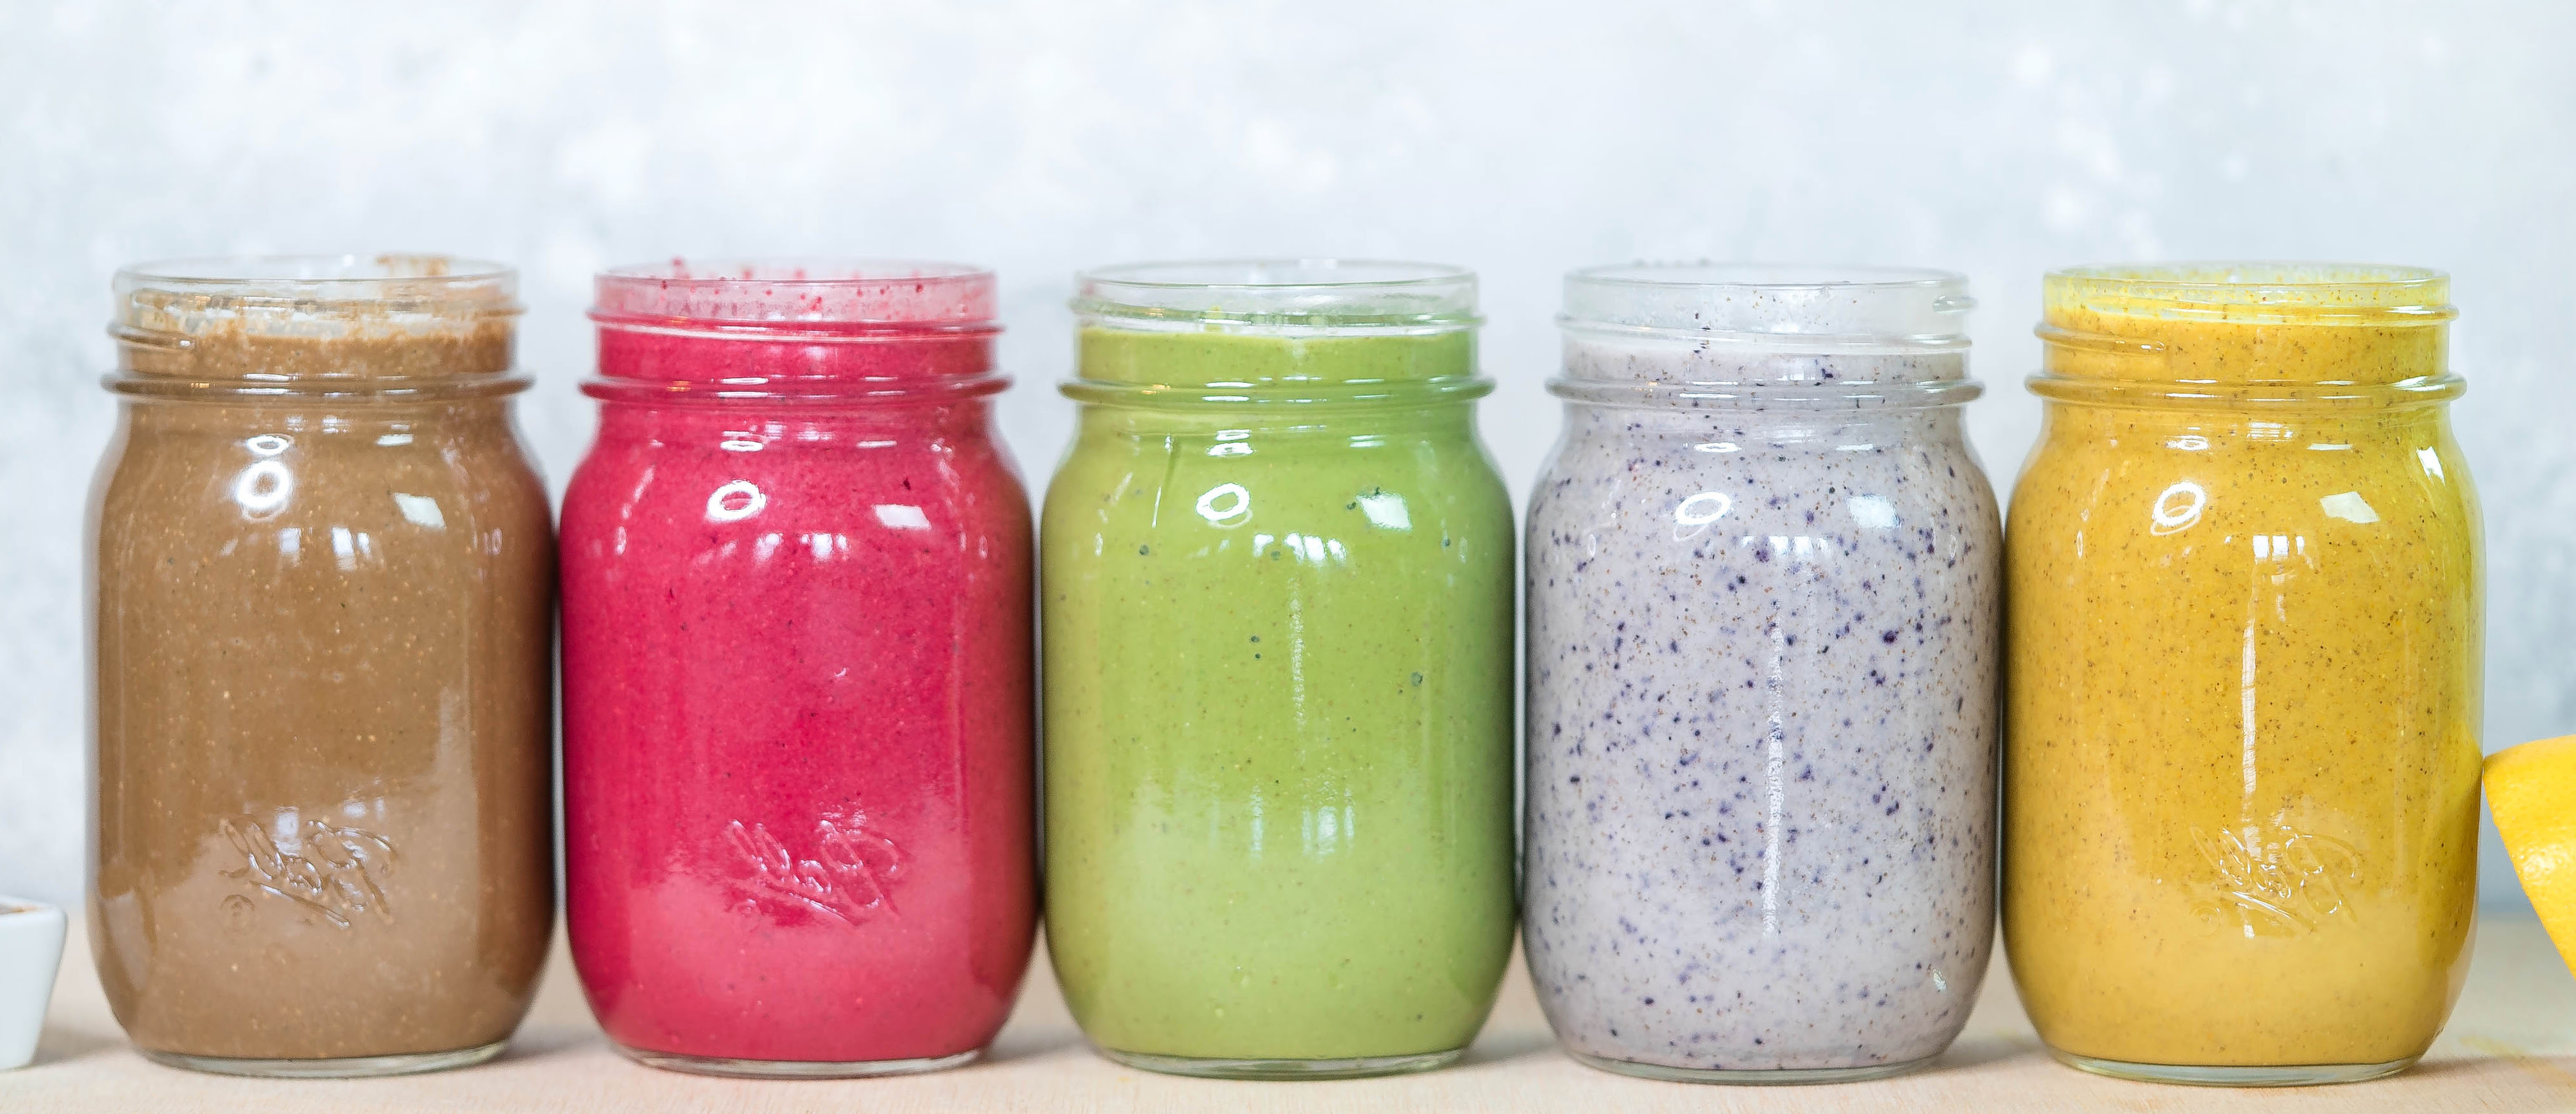 5 Fat Burning Breakfast Smoothies To Jumpstart Your Weight Loss Feelin Fabulous With Kayla